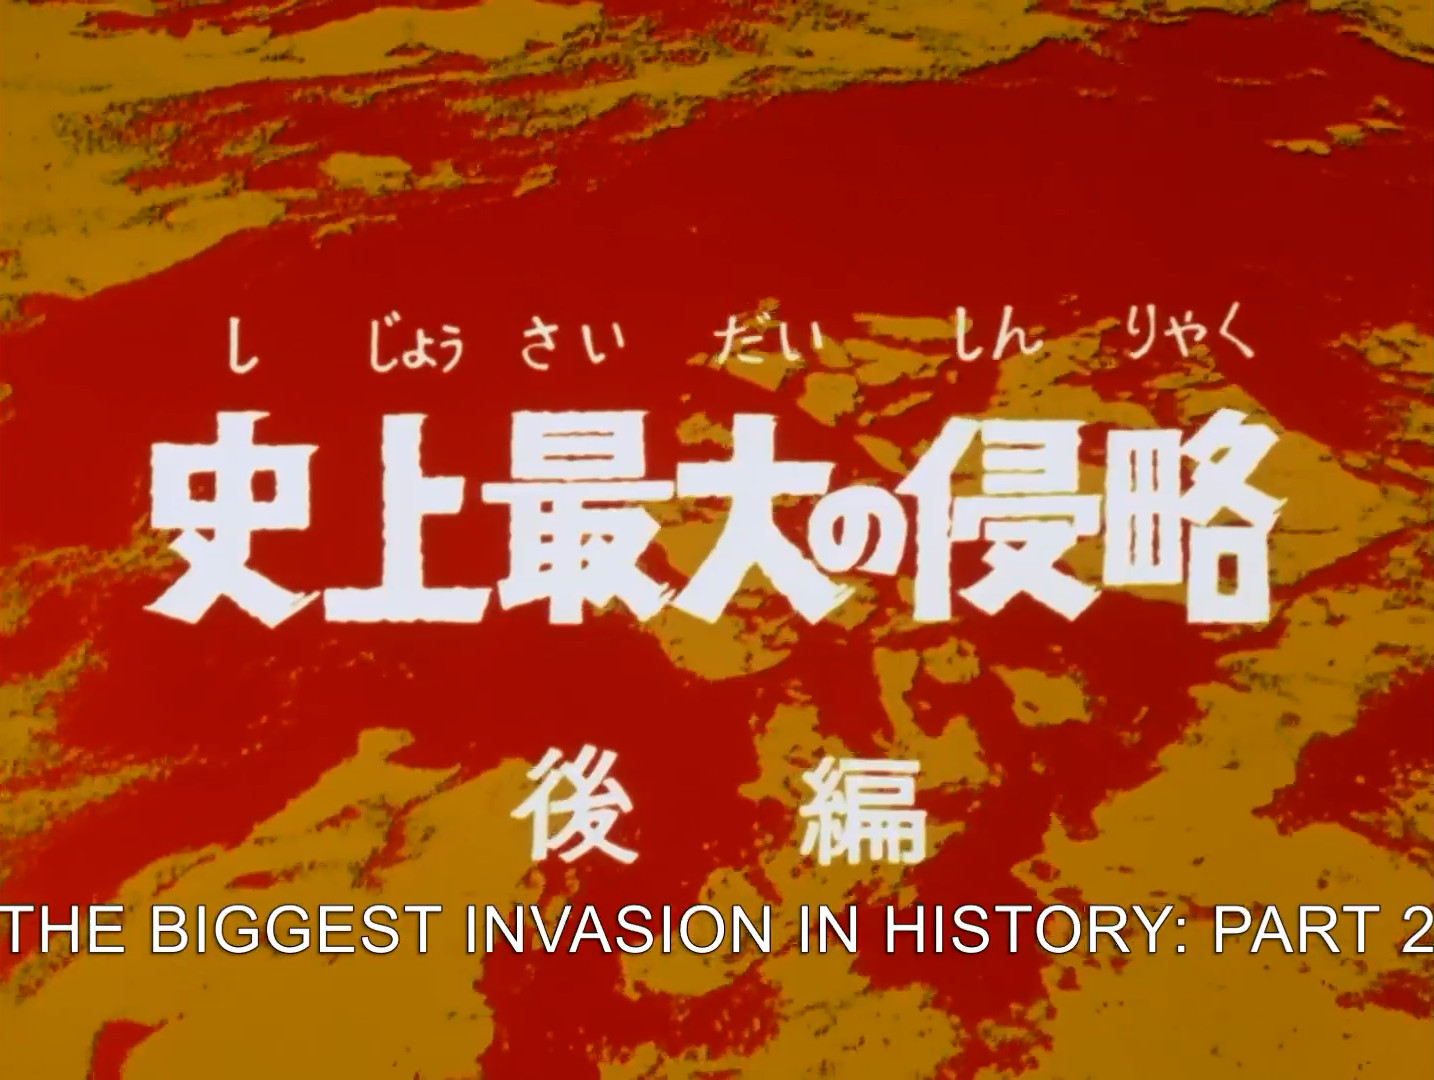 The Greatest Invasion in History Part 2